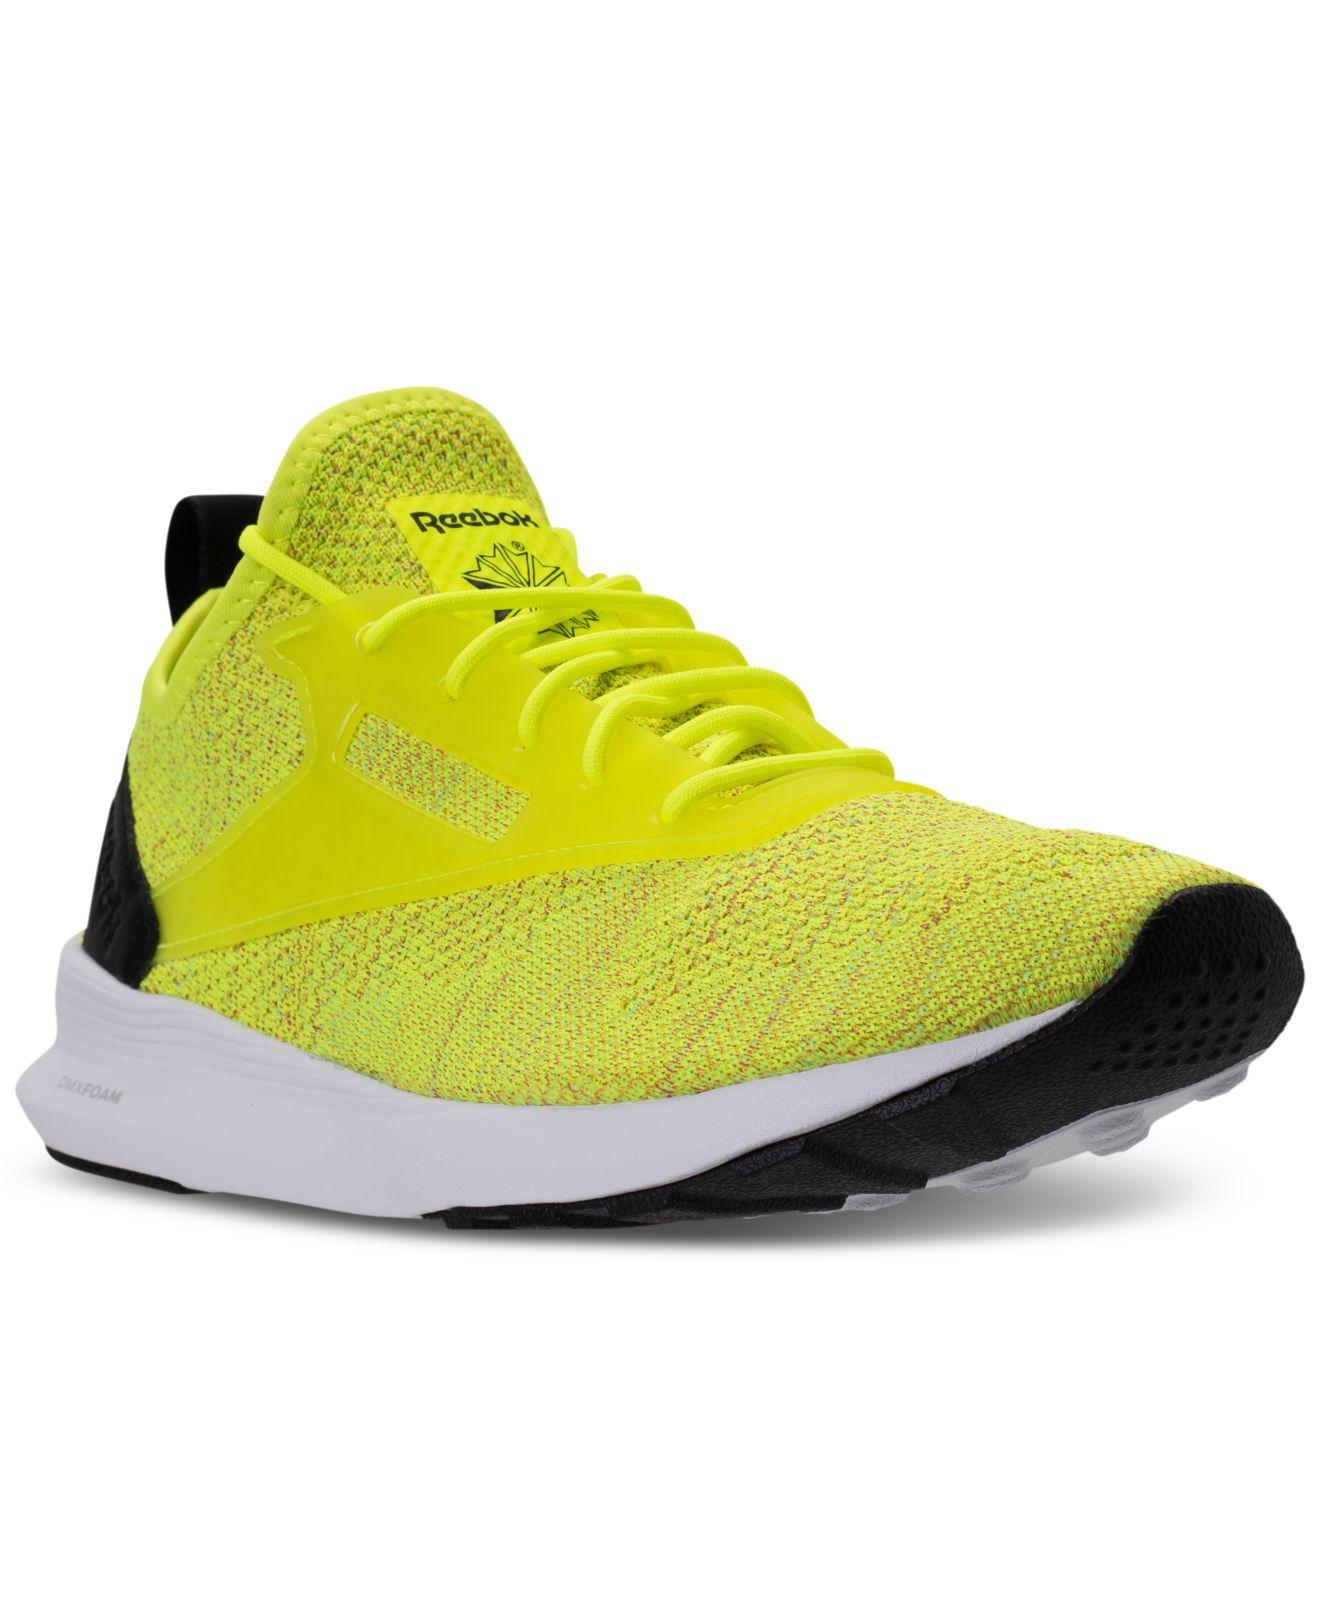 Lyst - Reebok Men s Zoku Runner Ism Casual Sneakers From Finish Line ... 15b1b0a70